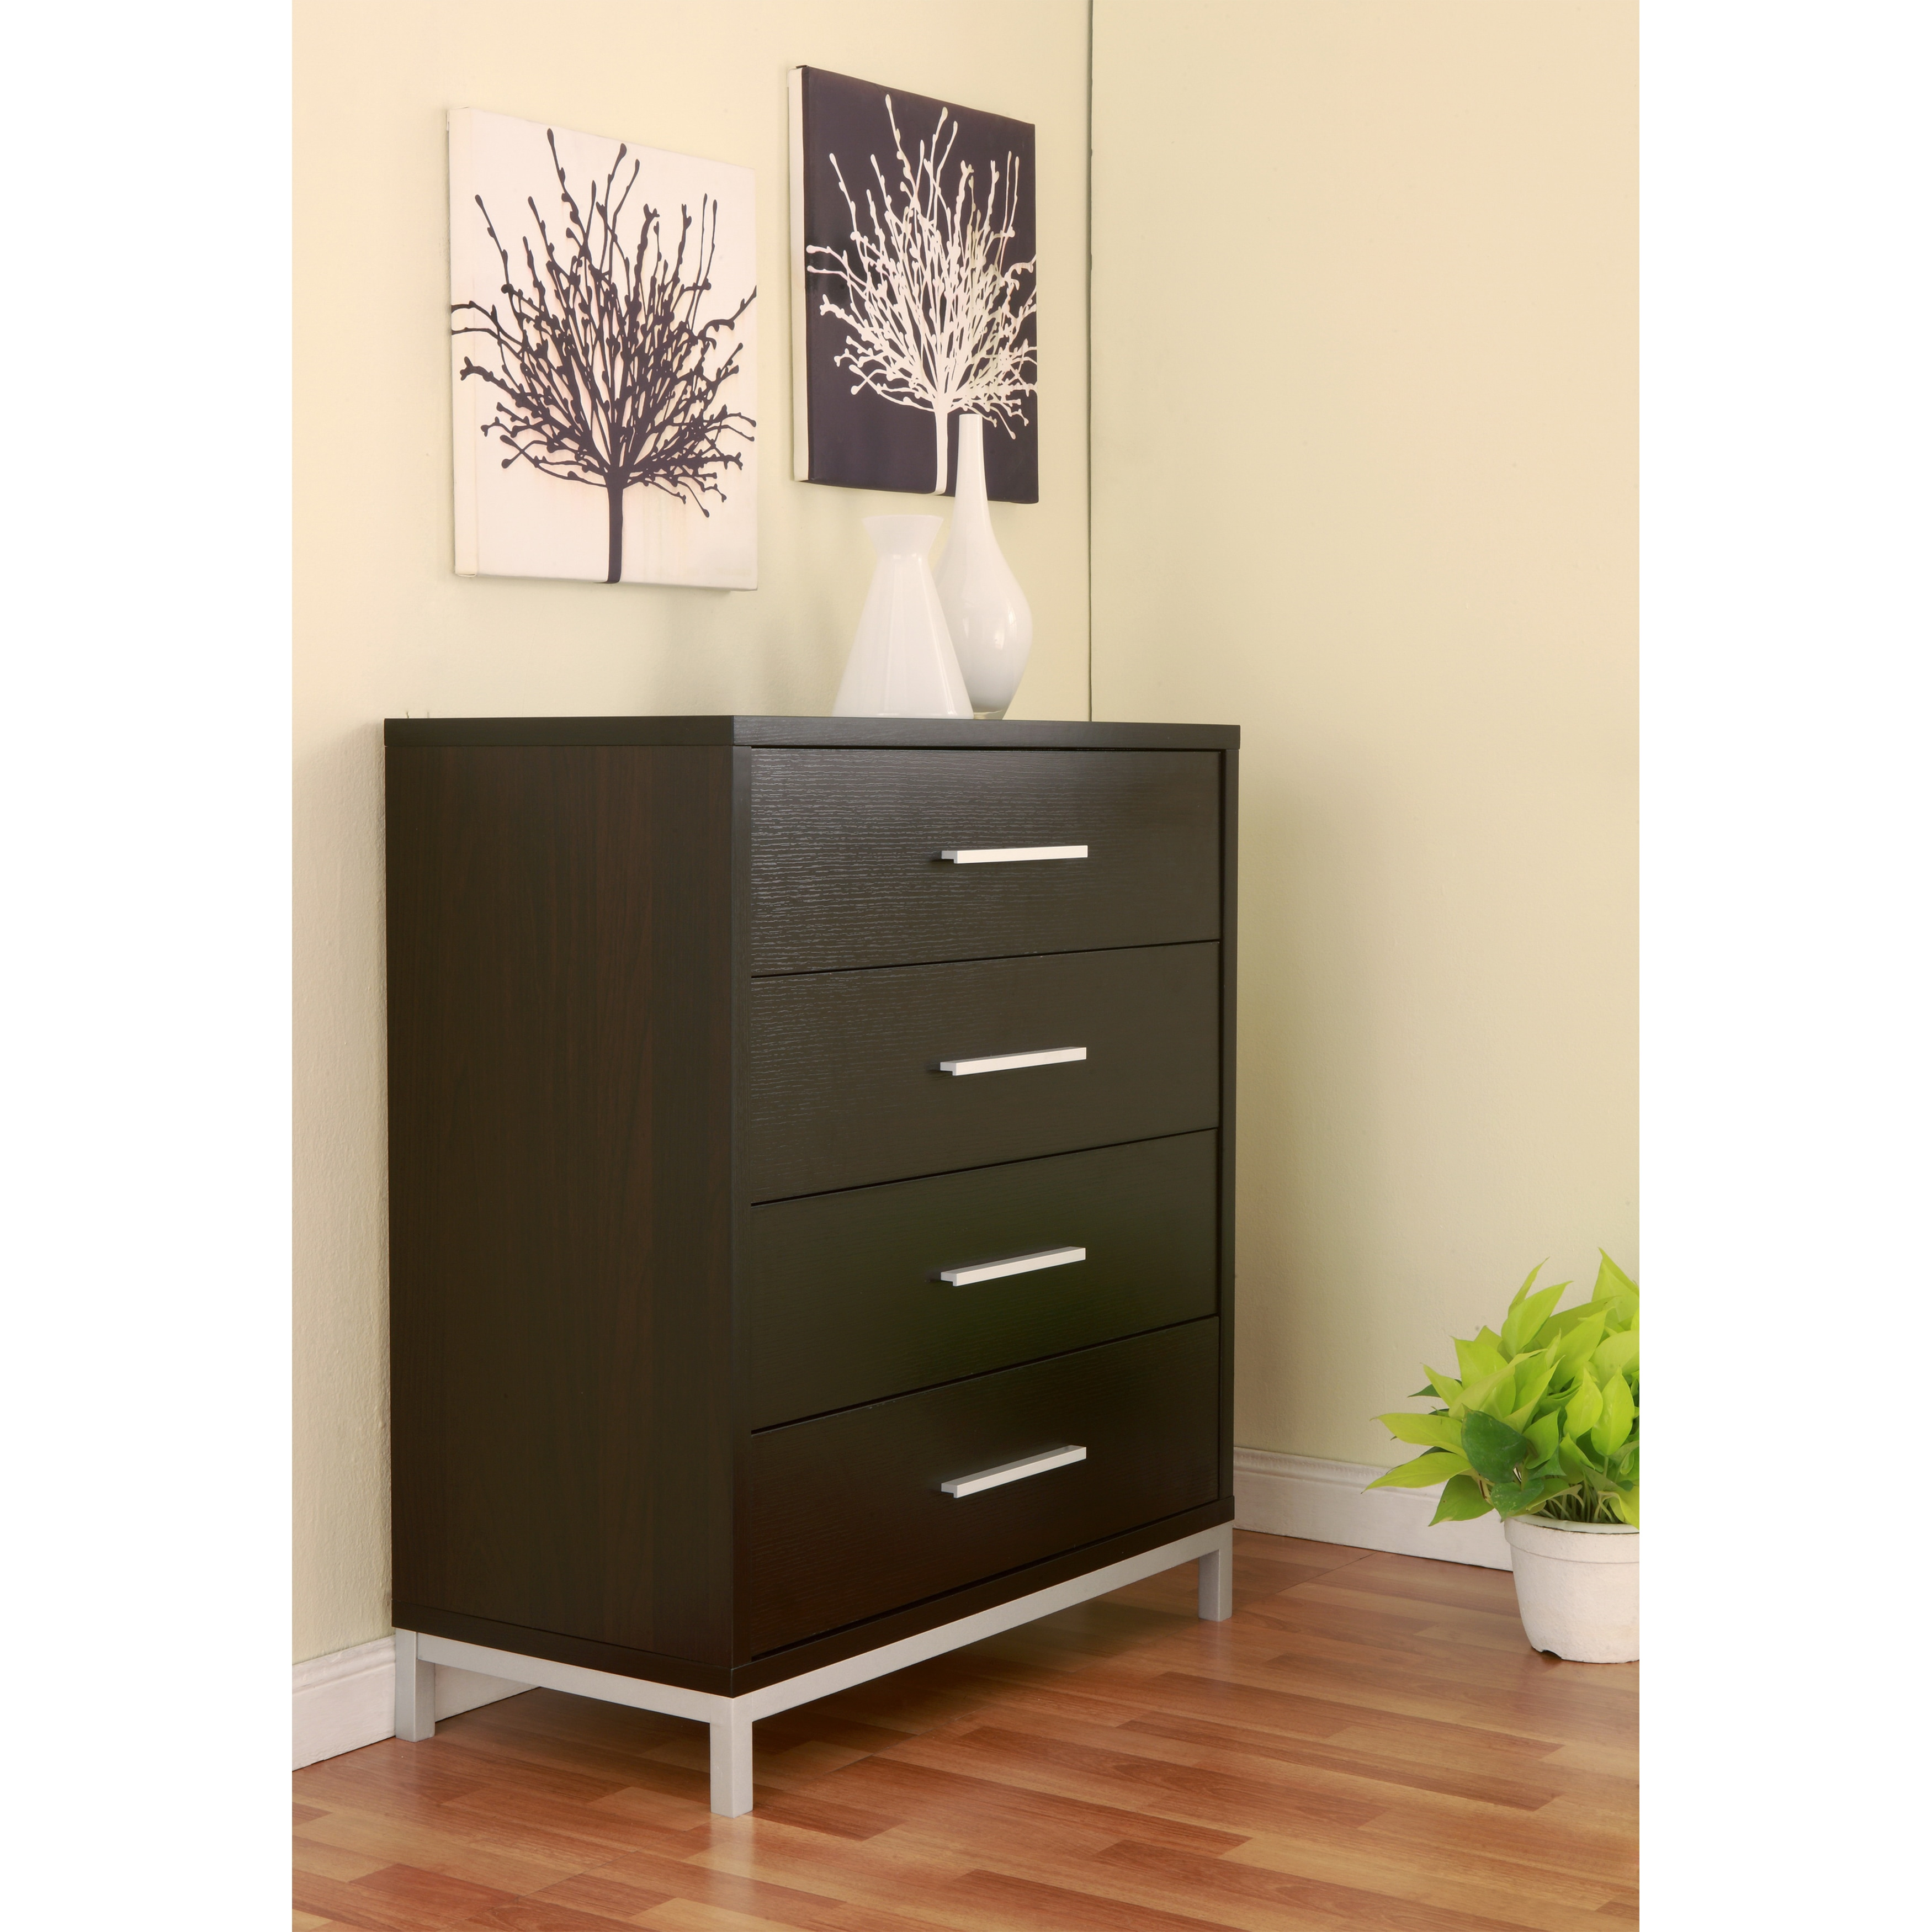 Furniture of America Modern 4-drawer Wood and Metal Chest - Free Shipping  Today - Overstock.com - 11254287